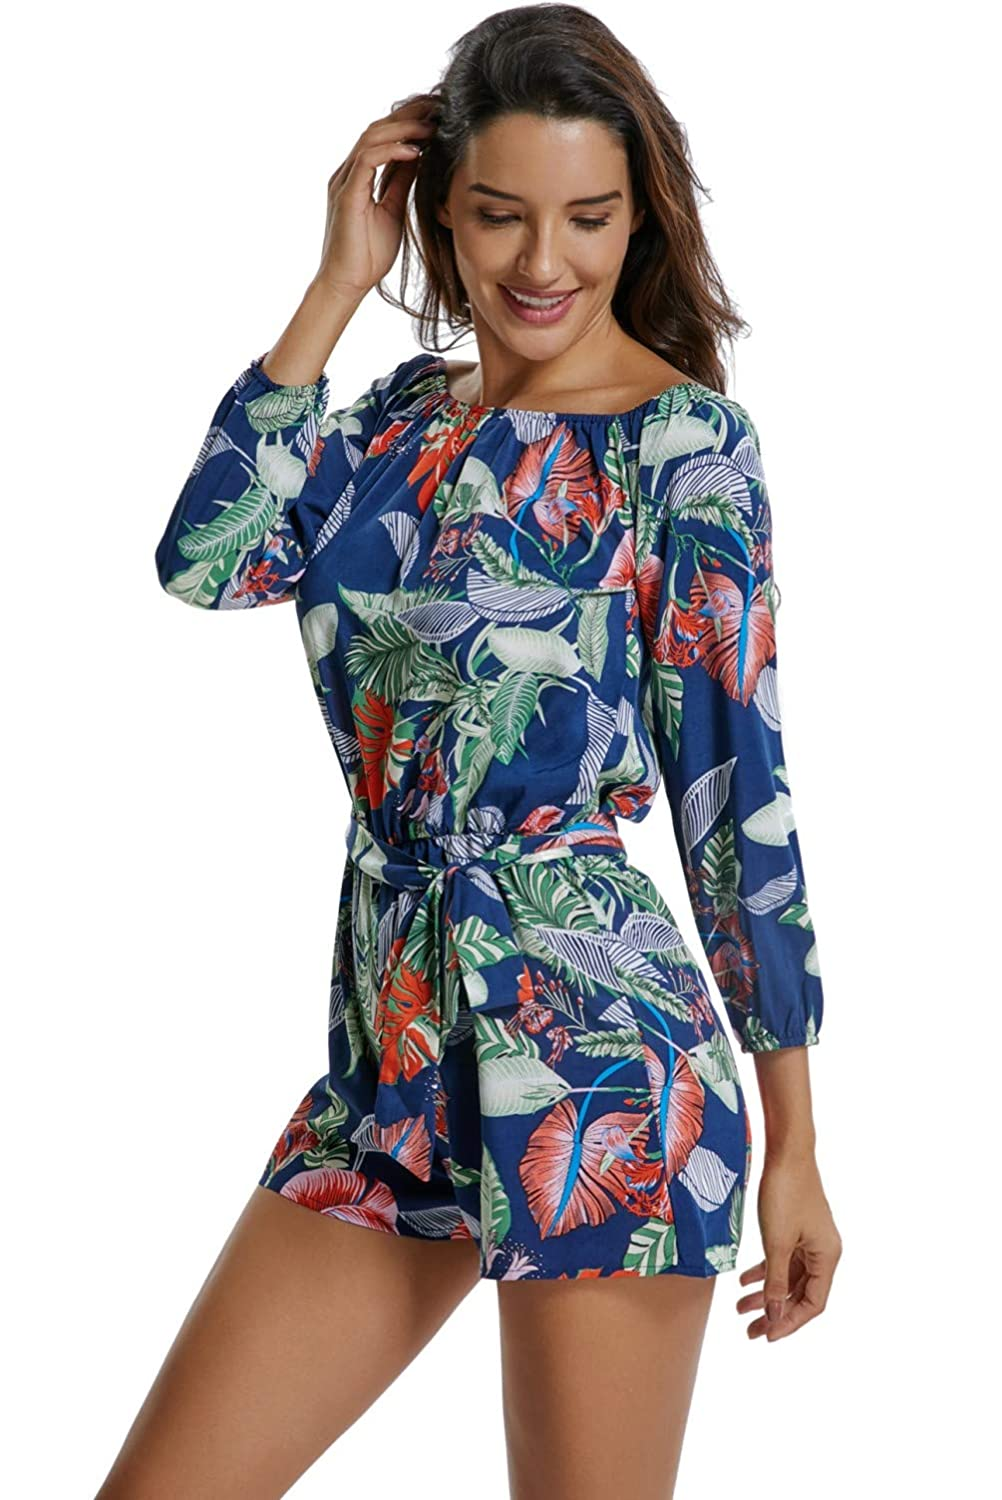 MISS MOLY Rompers for Women Strapless Off The Shoulder Long Sleeve Short Jumpsuits with Belt